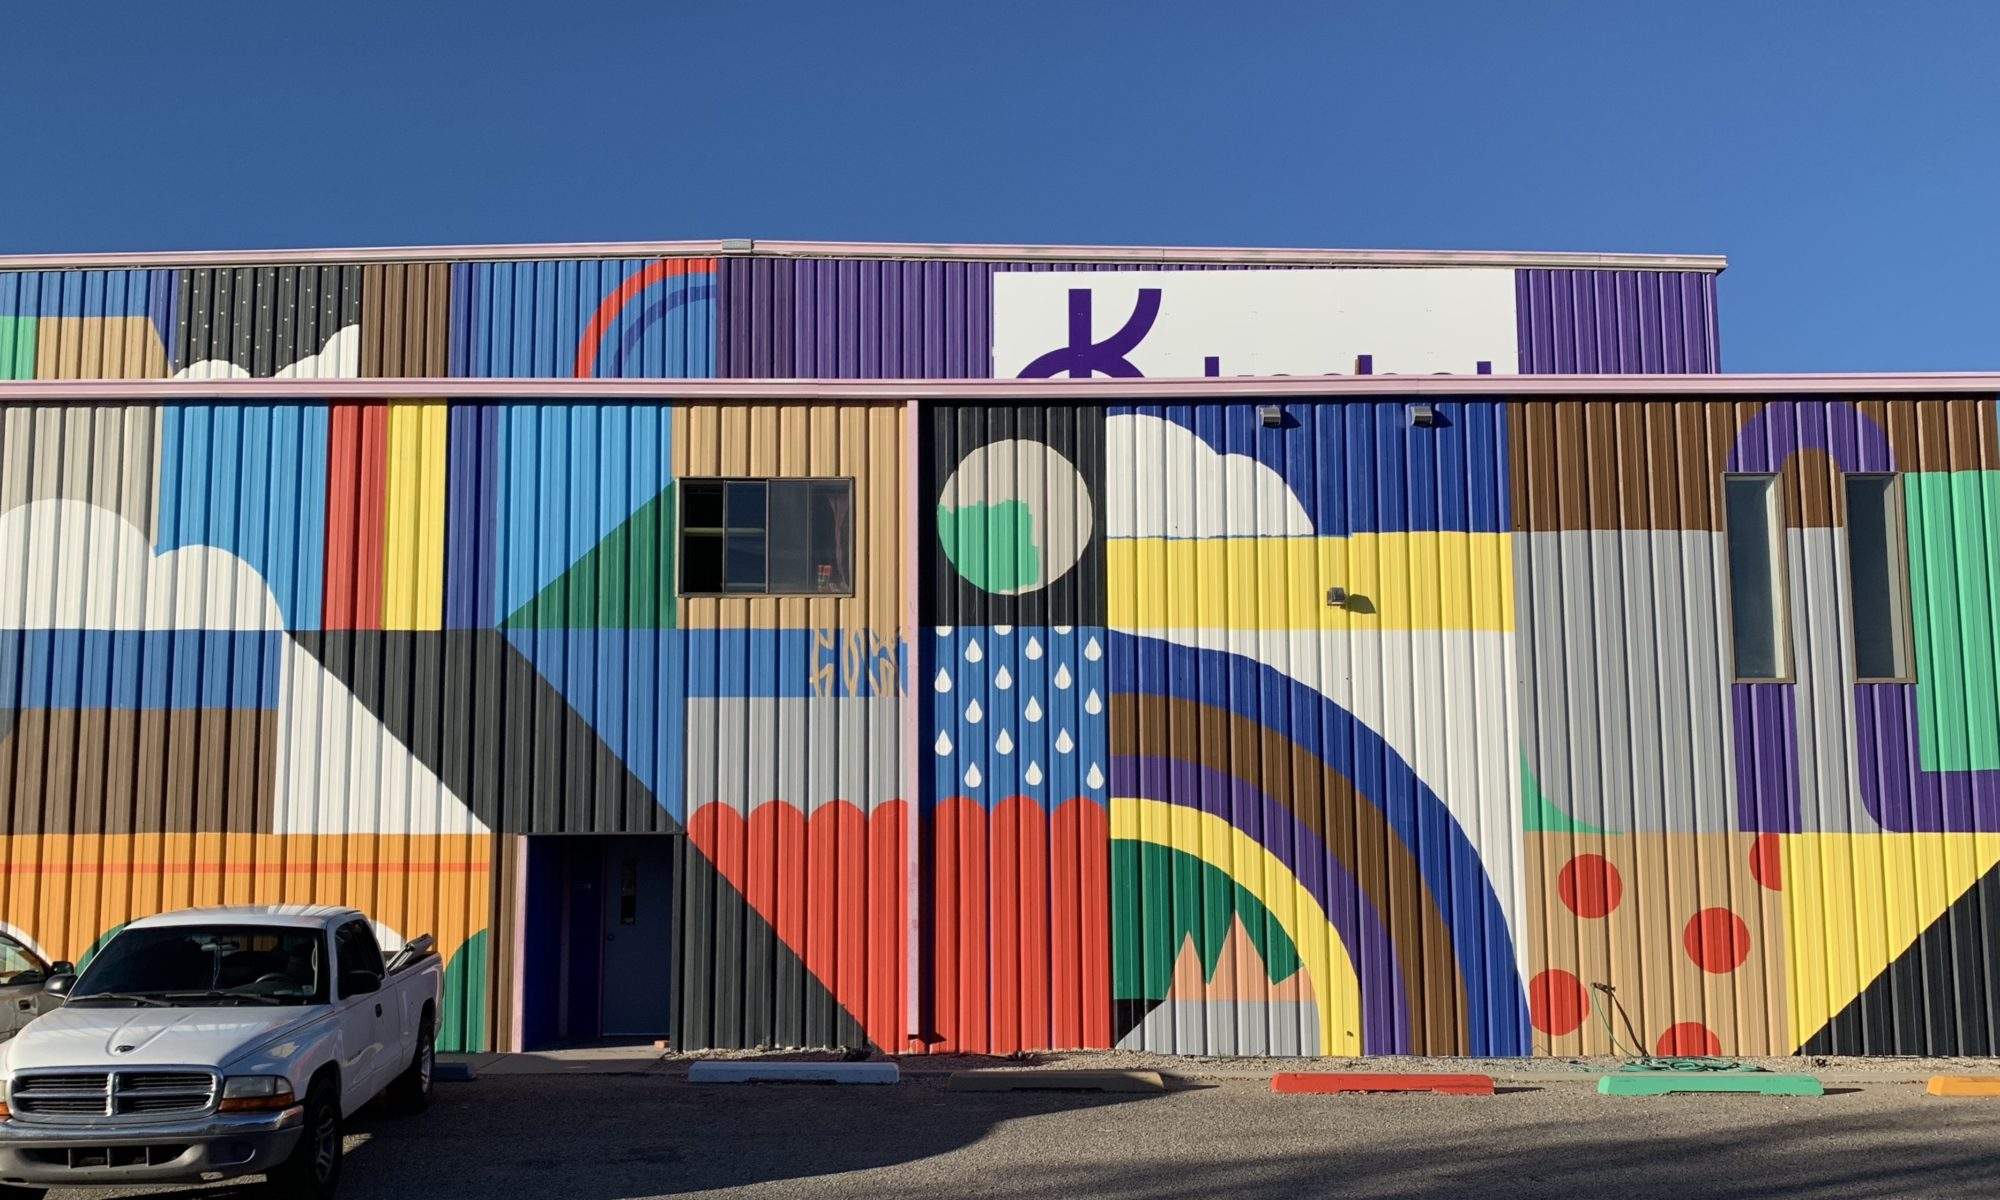 mural of elementary style blocks